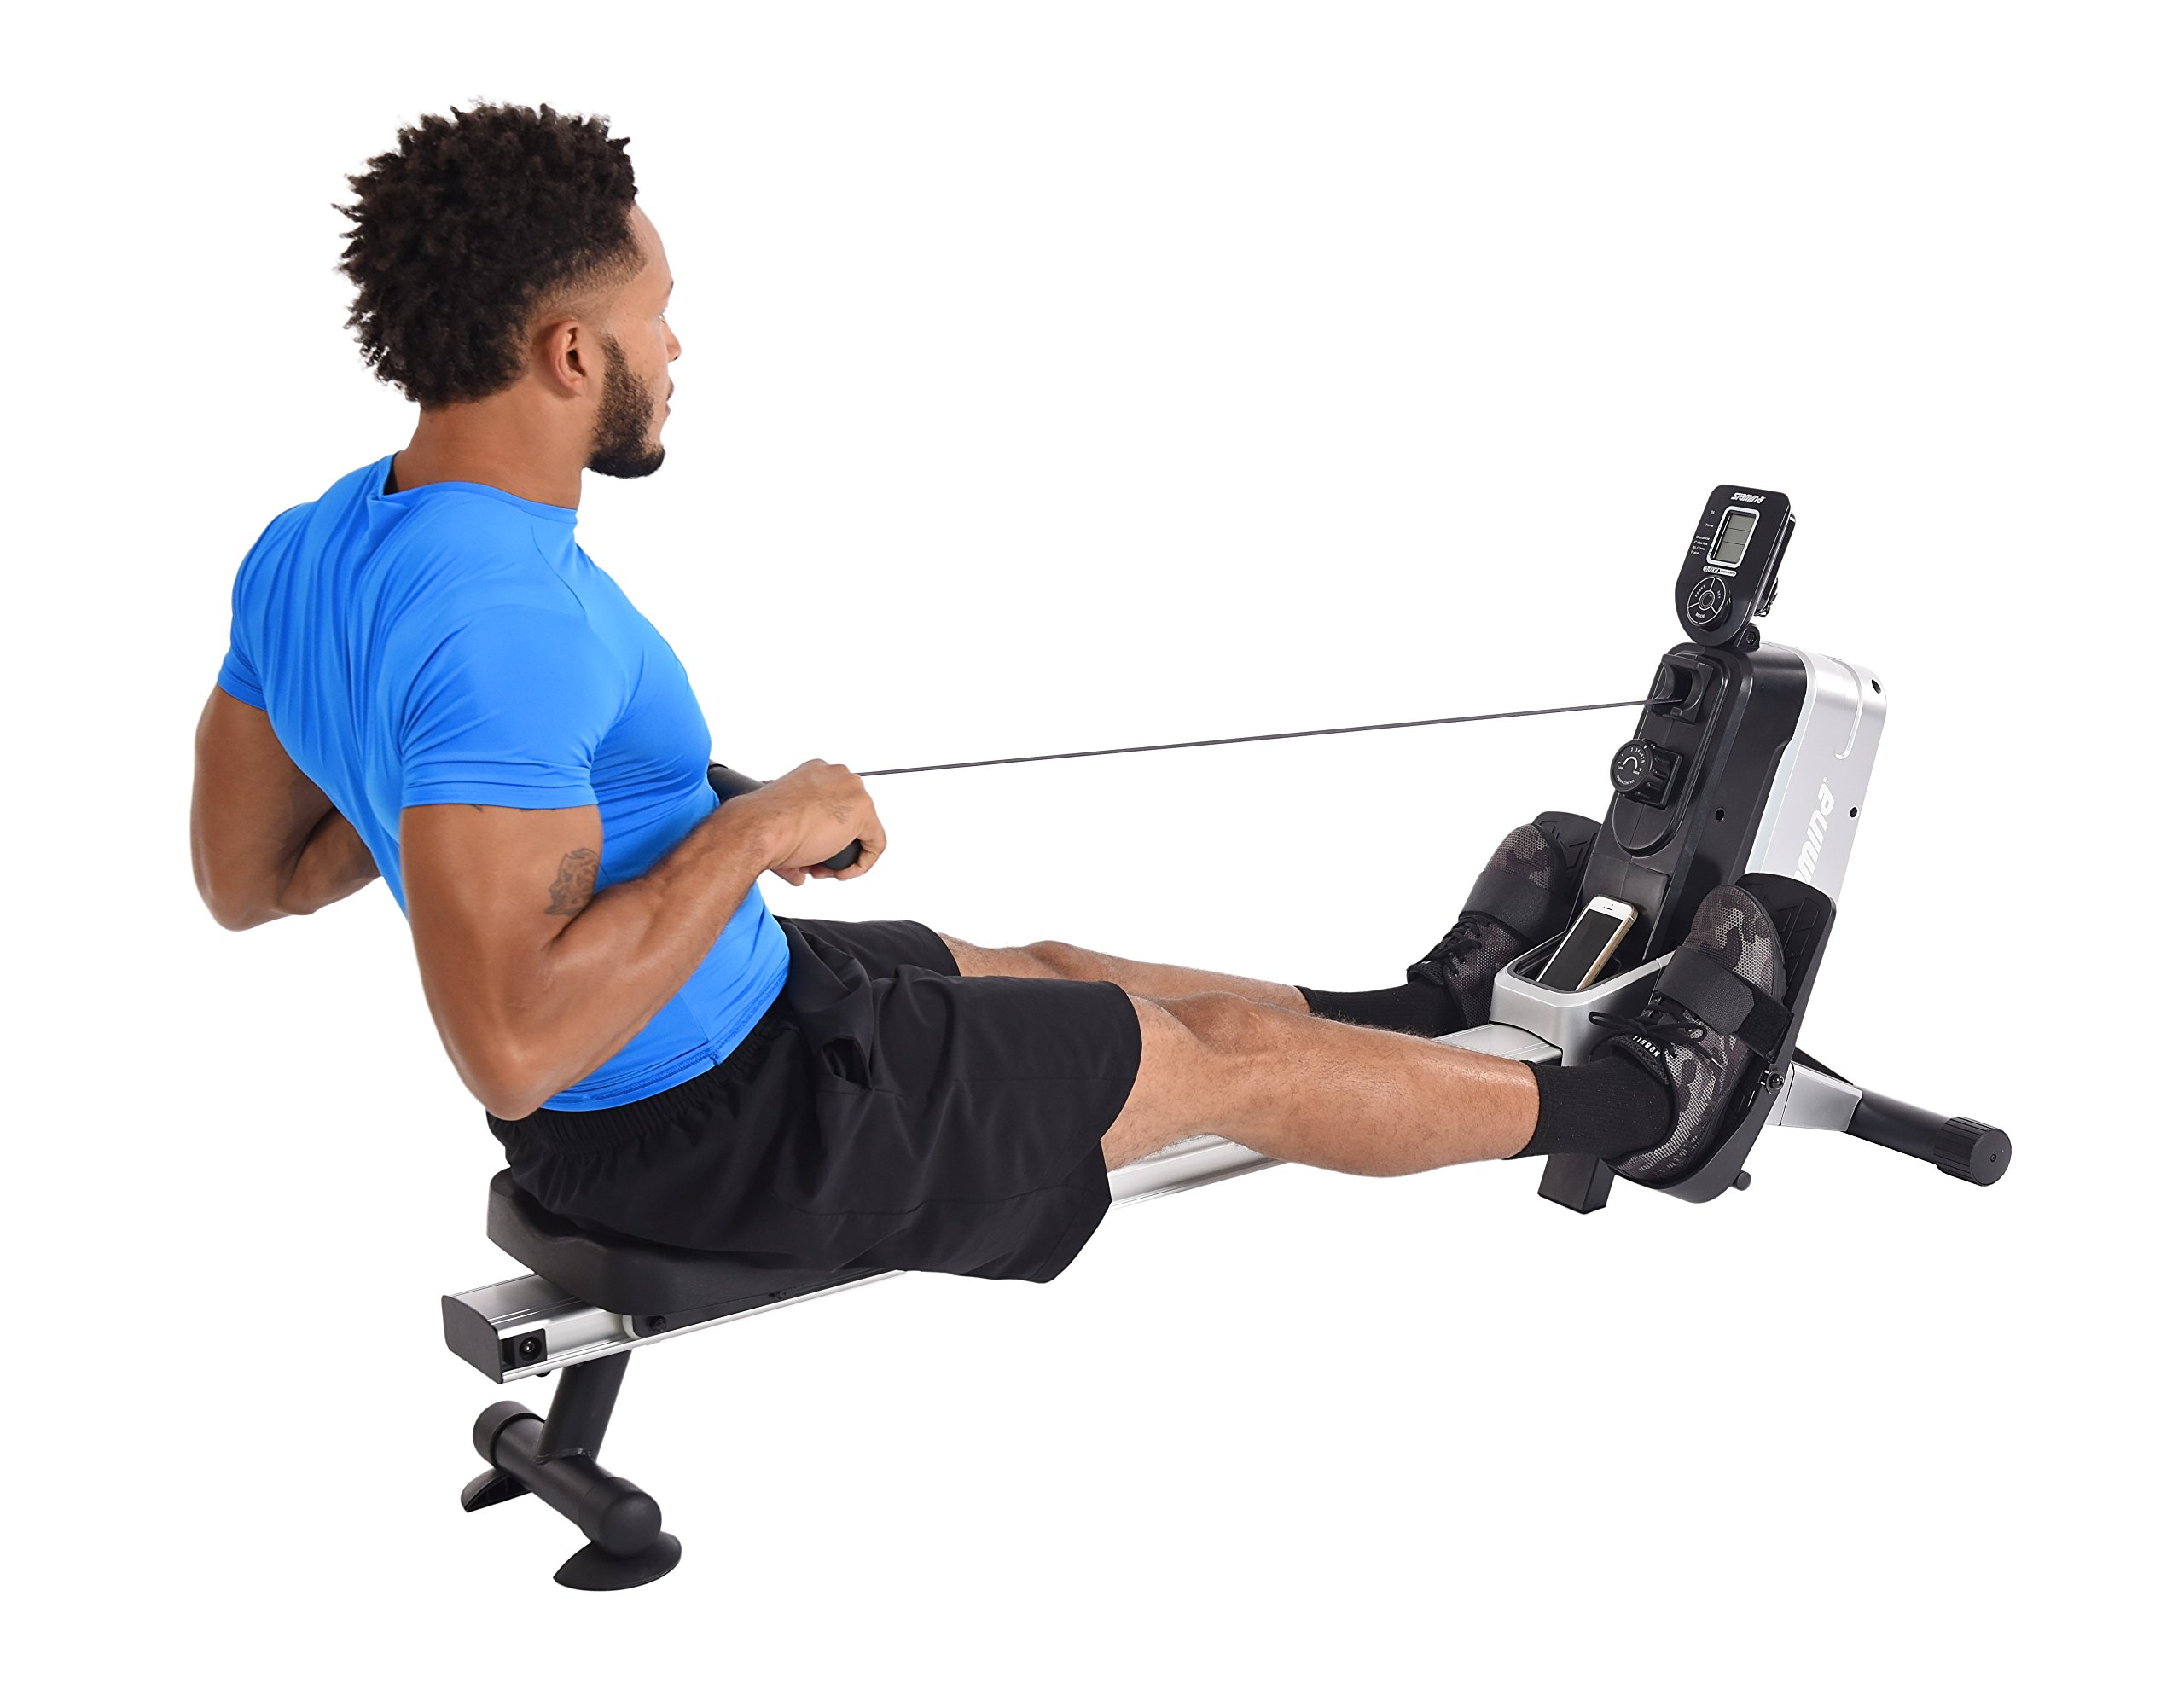 Stamina Multi-Level Magnetic Resistance Rower, Compact Rowing Machine by Stamina (Image #3)